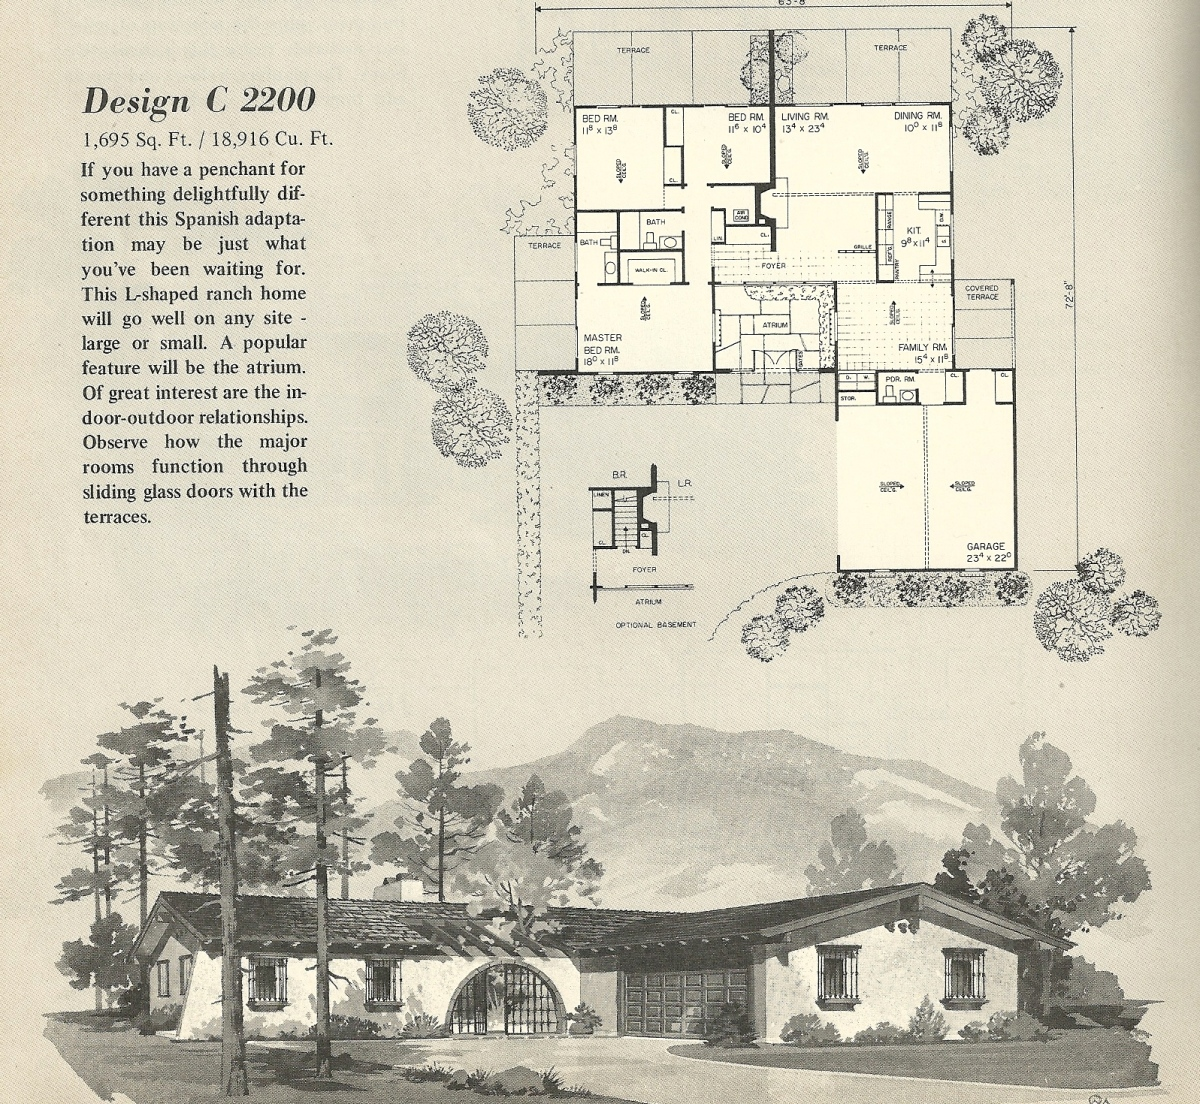 Vintage house plans 2200 antique alter ego for 1960 s home plans